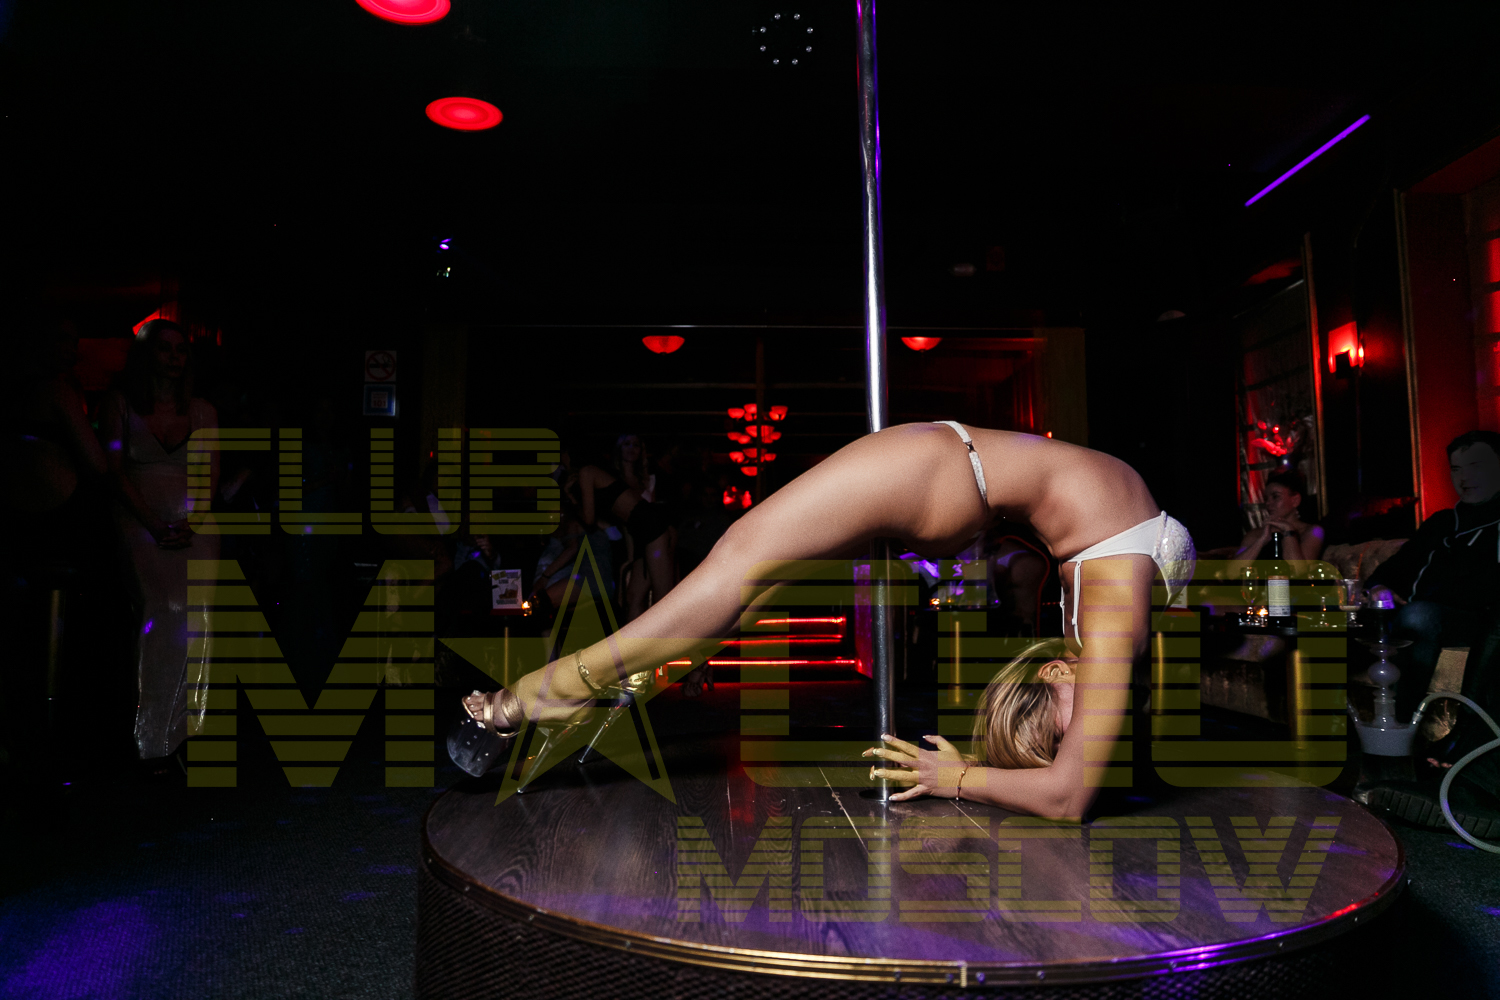 Strip club scam